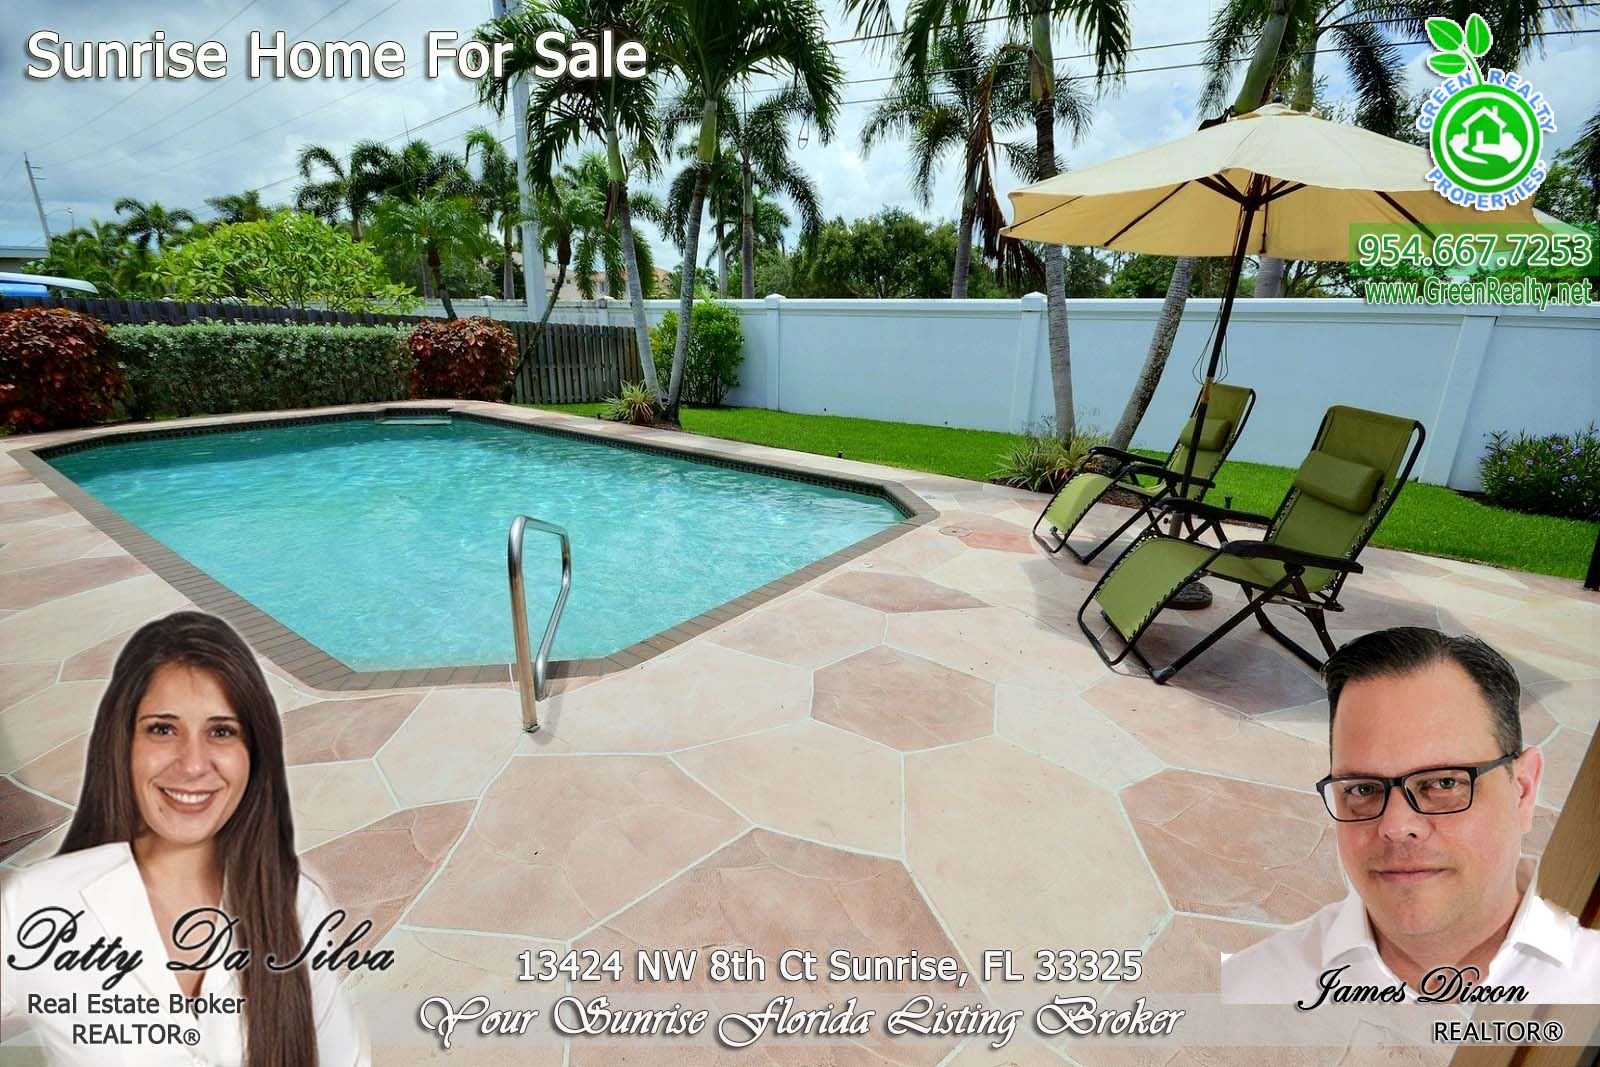 29 Sunrise Florida Homes For Sale (5)